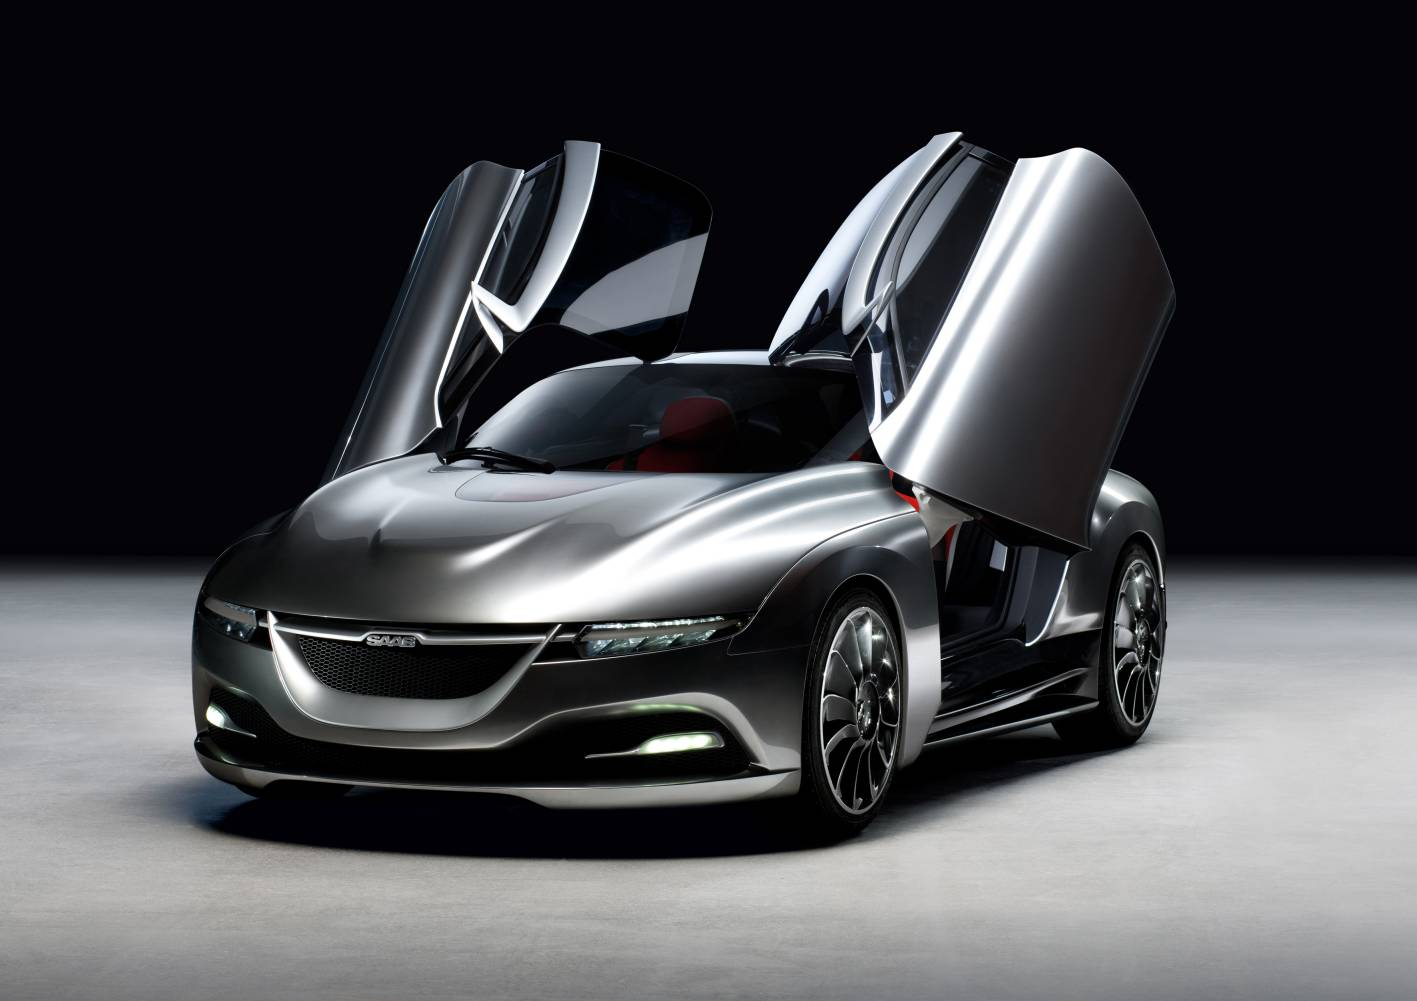 News - Saab Sold To Electric Vehicle Consortium